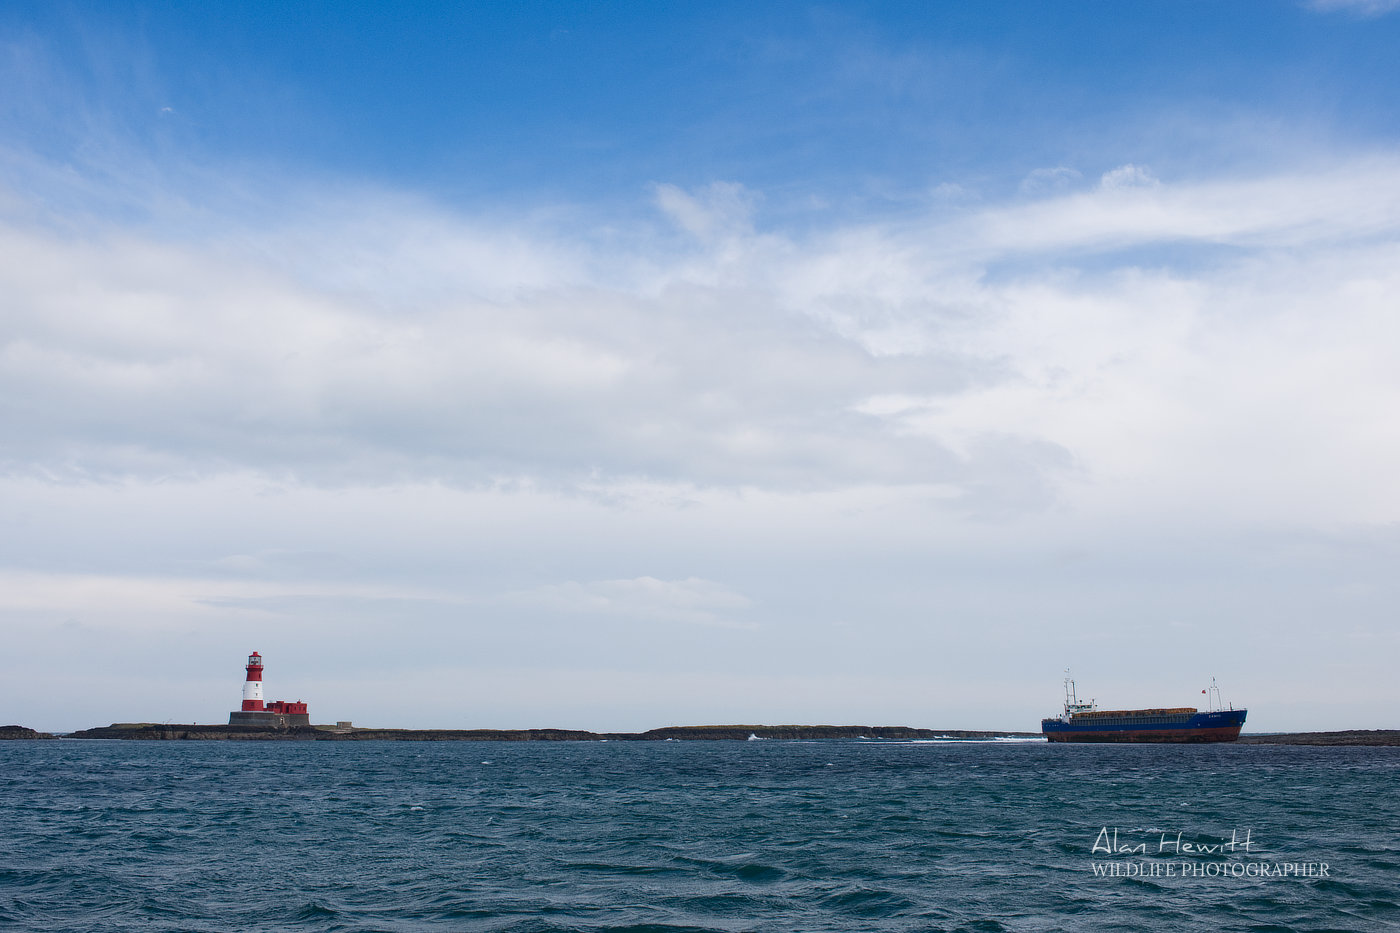 MV Danio Grounded on the Blue Caps with Longstone Lighthouse in proximity, Farne Islands. Alan Hewitt Photography.